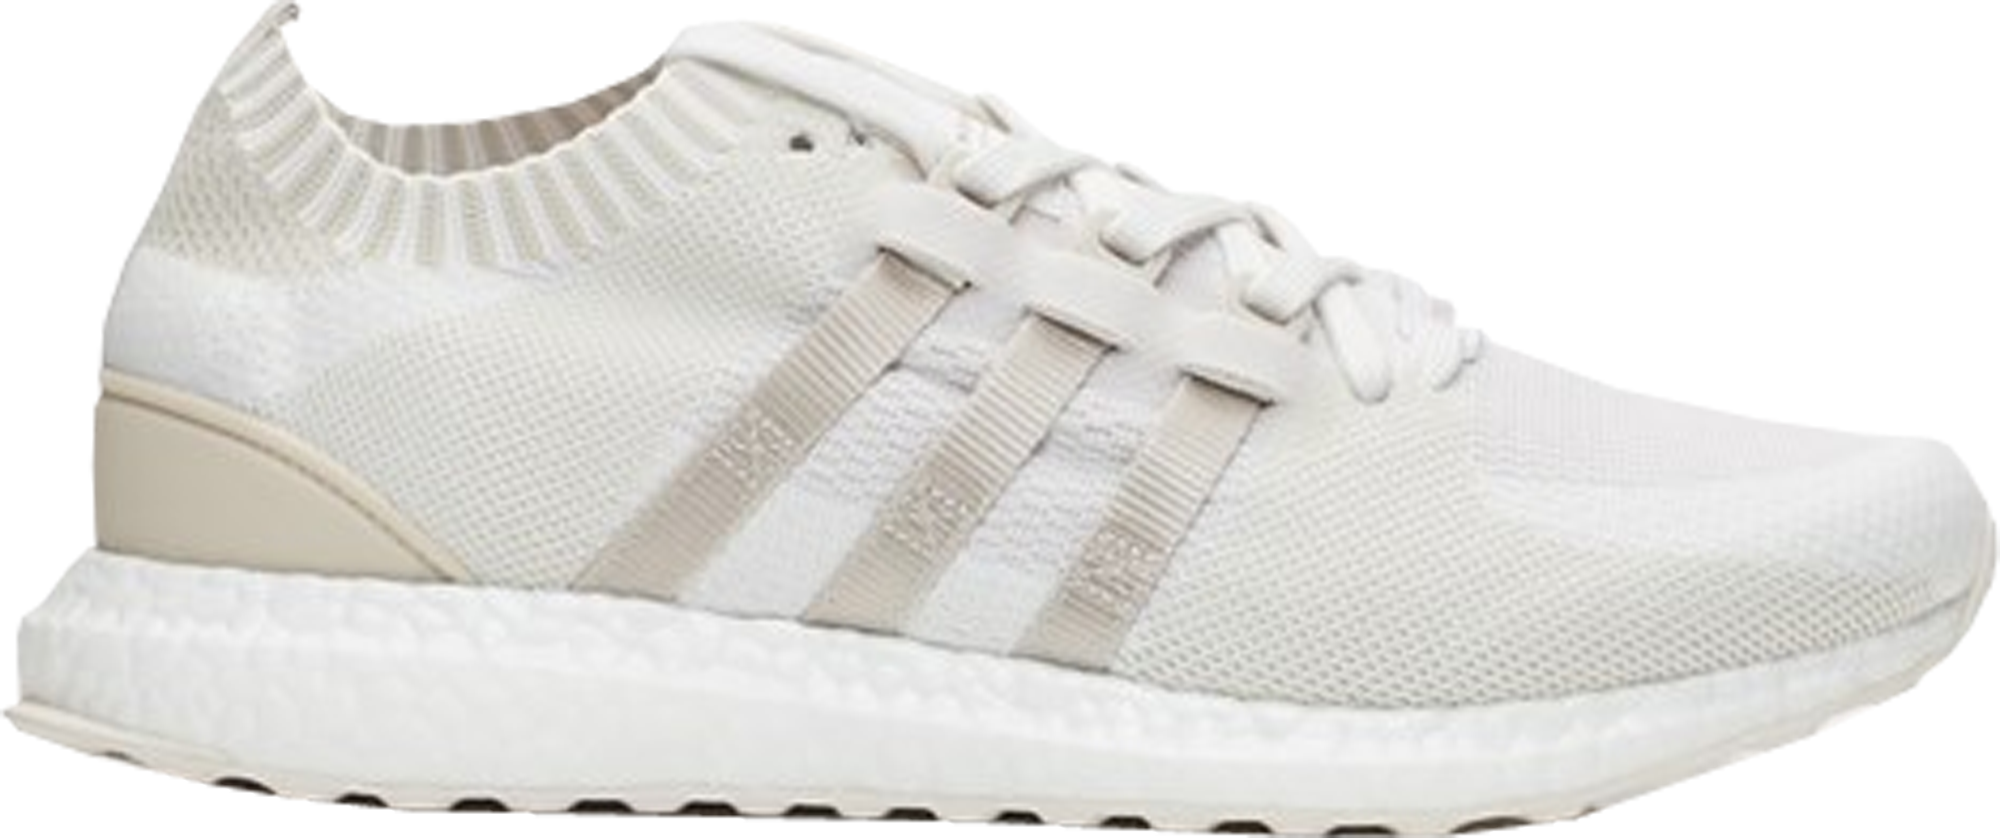 adidas EQT Support Ultra Primeknit Materials White